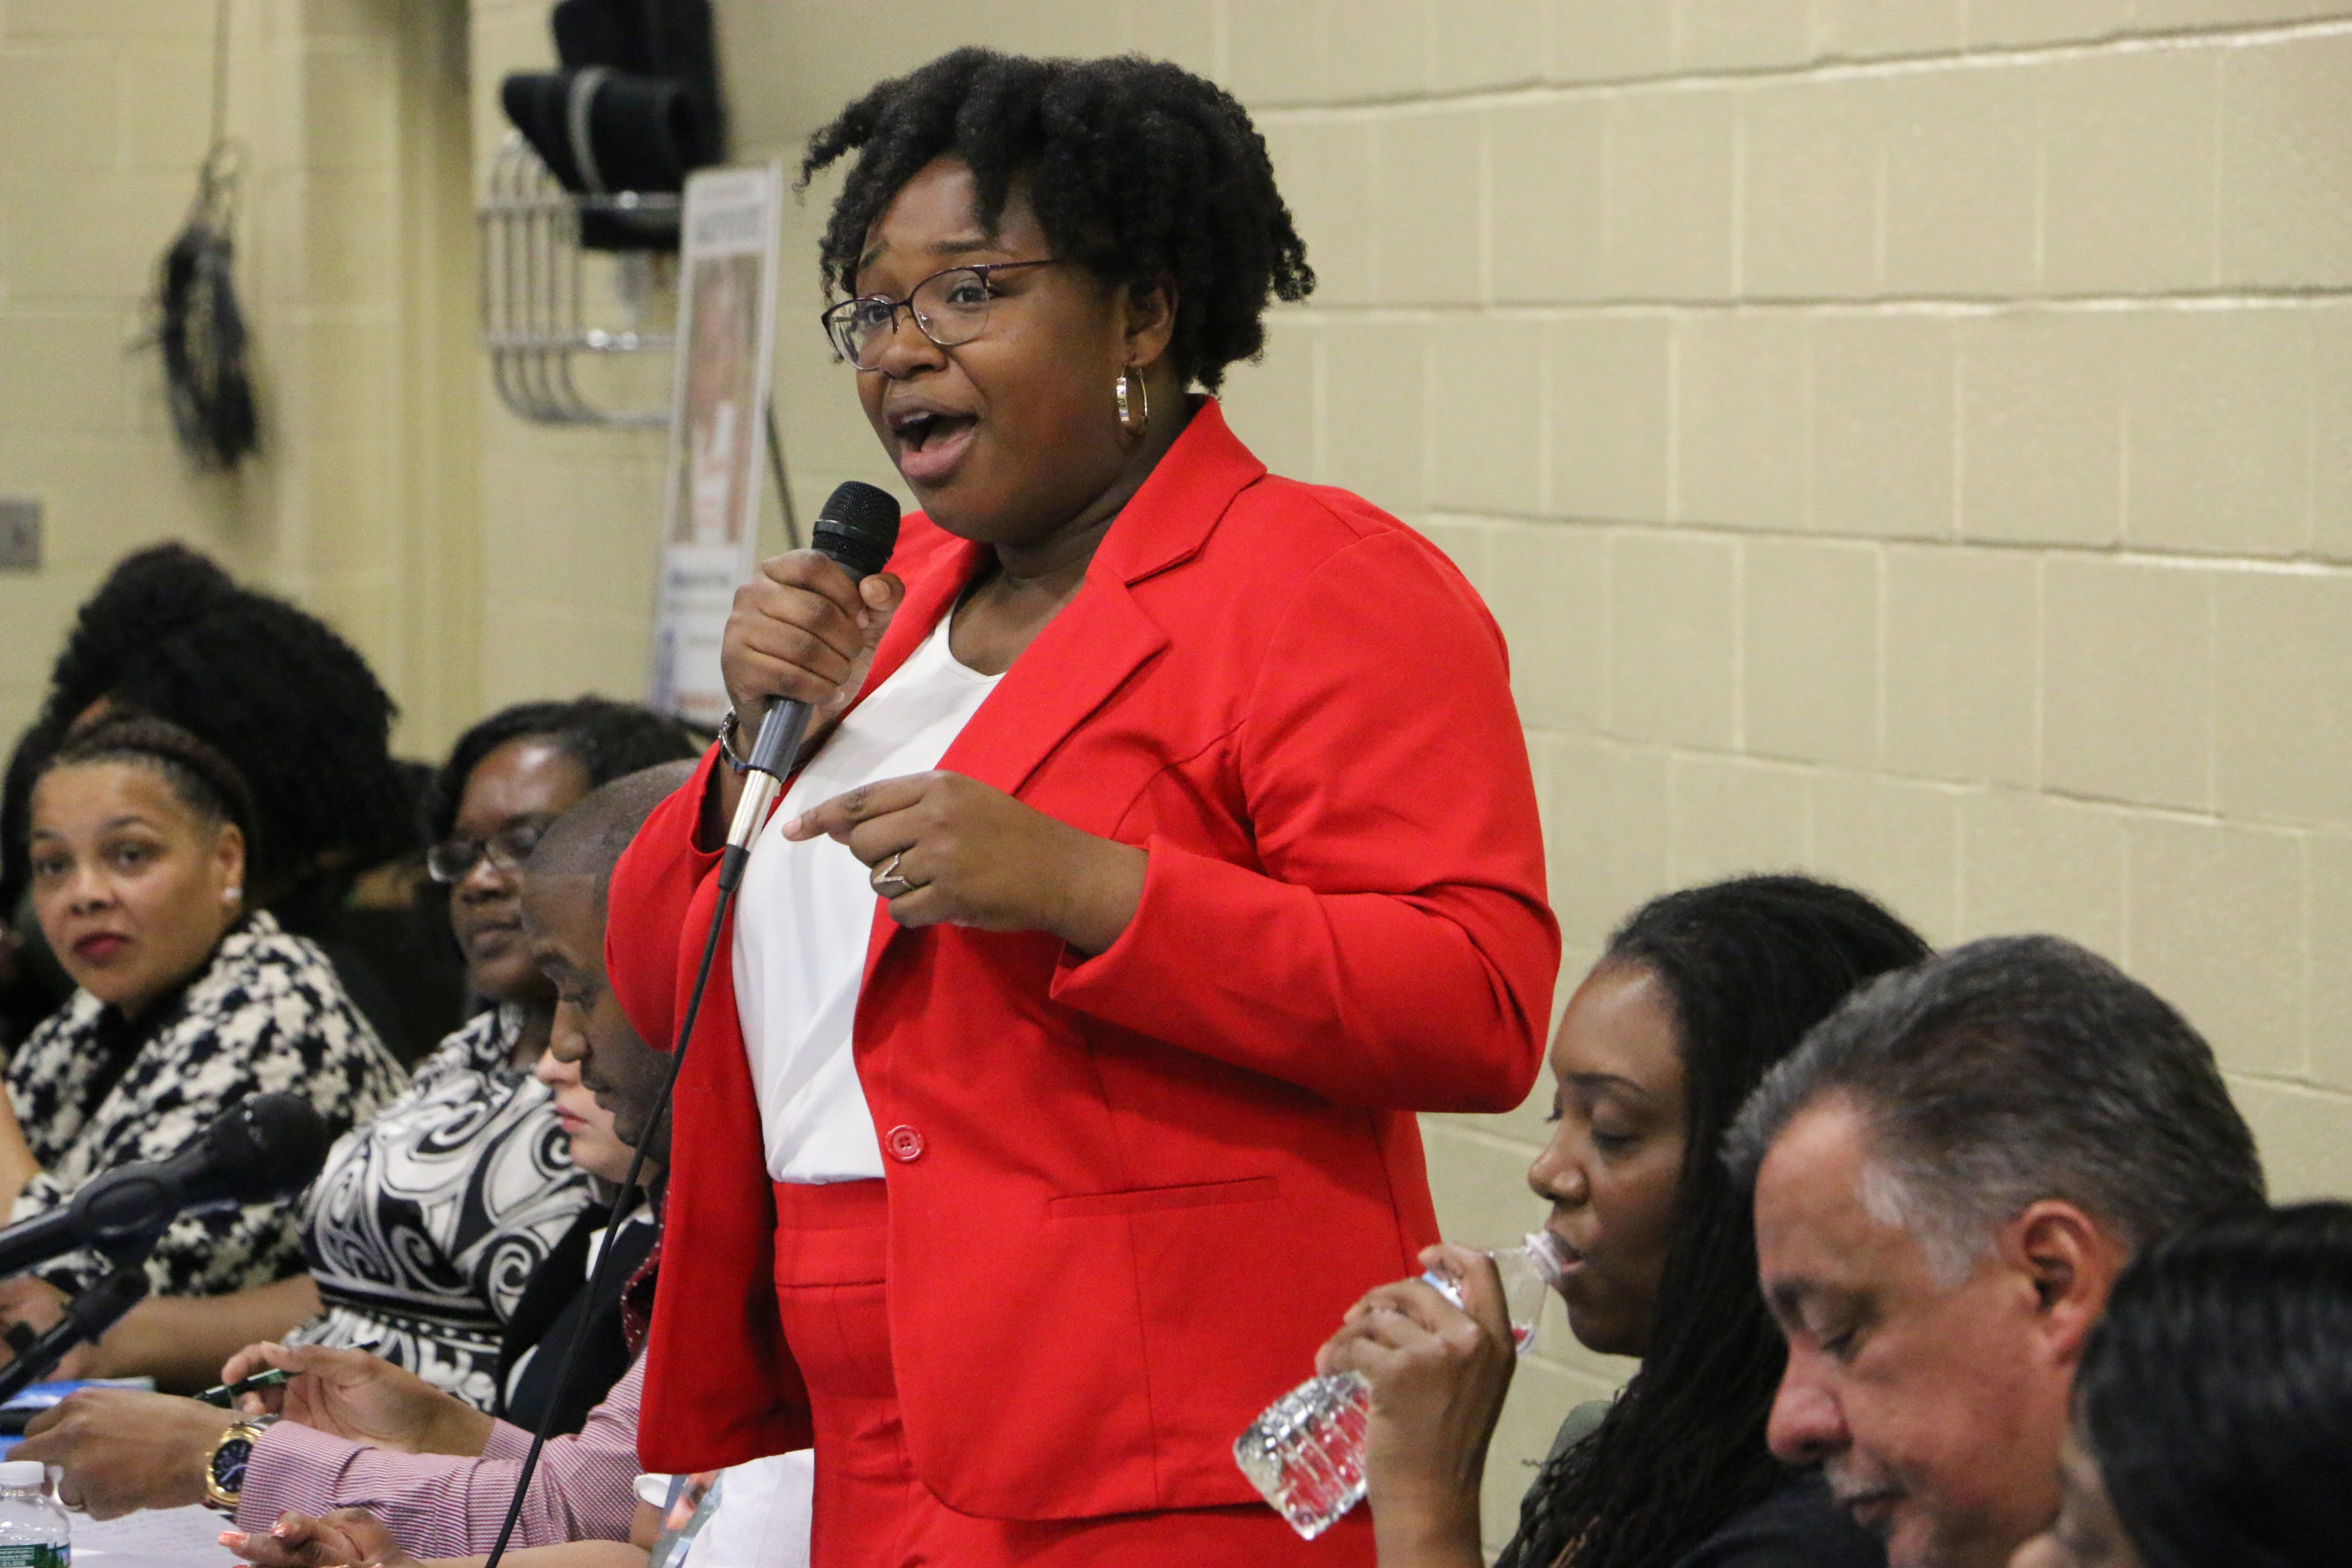 Newark Board of Education member A'Dorian Murray-Thomas. wearing a red suit, speaks while holding a microphone.